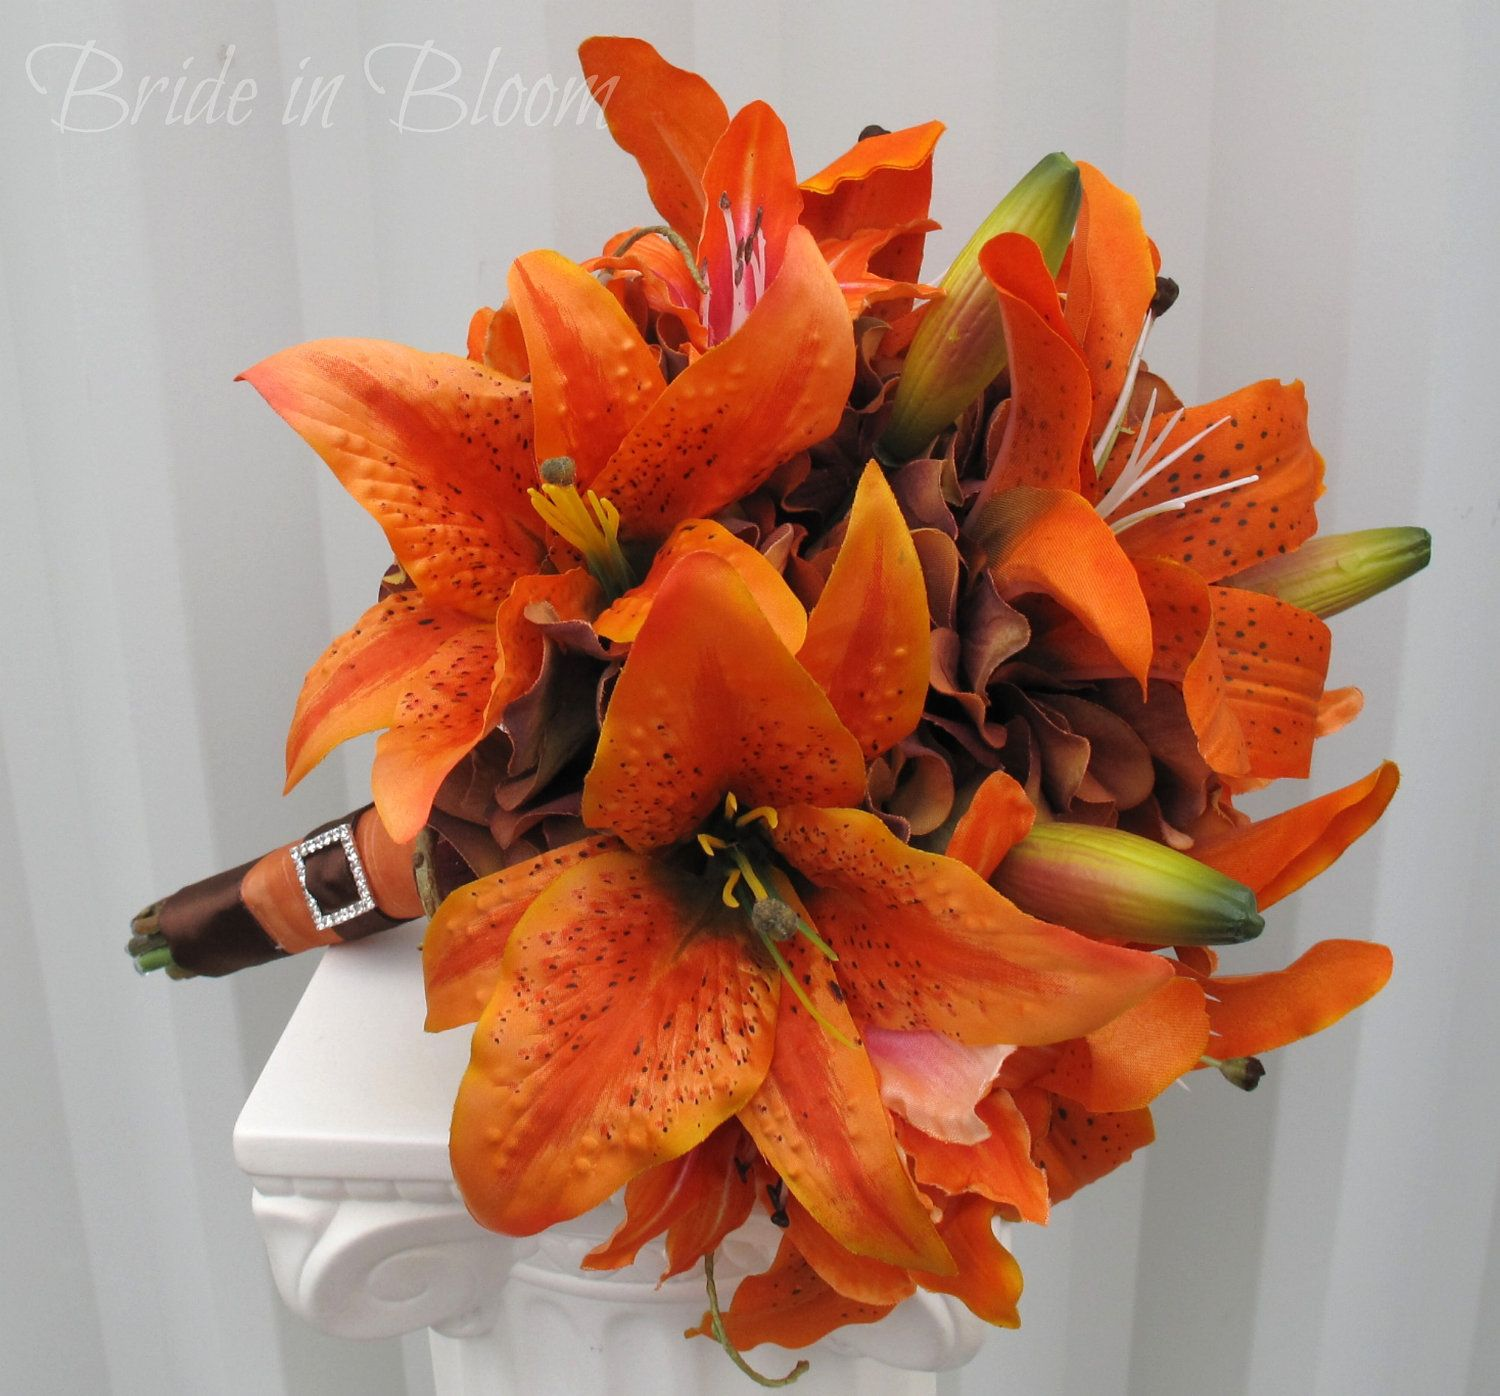 Tiger lily wedding bouquet silk bridal bouquet orange brown autumn tiger lily wedding bouquet silk bridal bouquet orange brown autumn fall wedding flowers izmirmasajfo